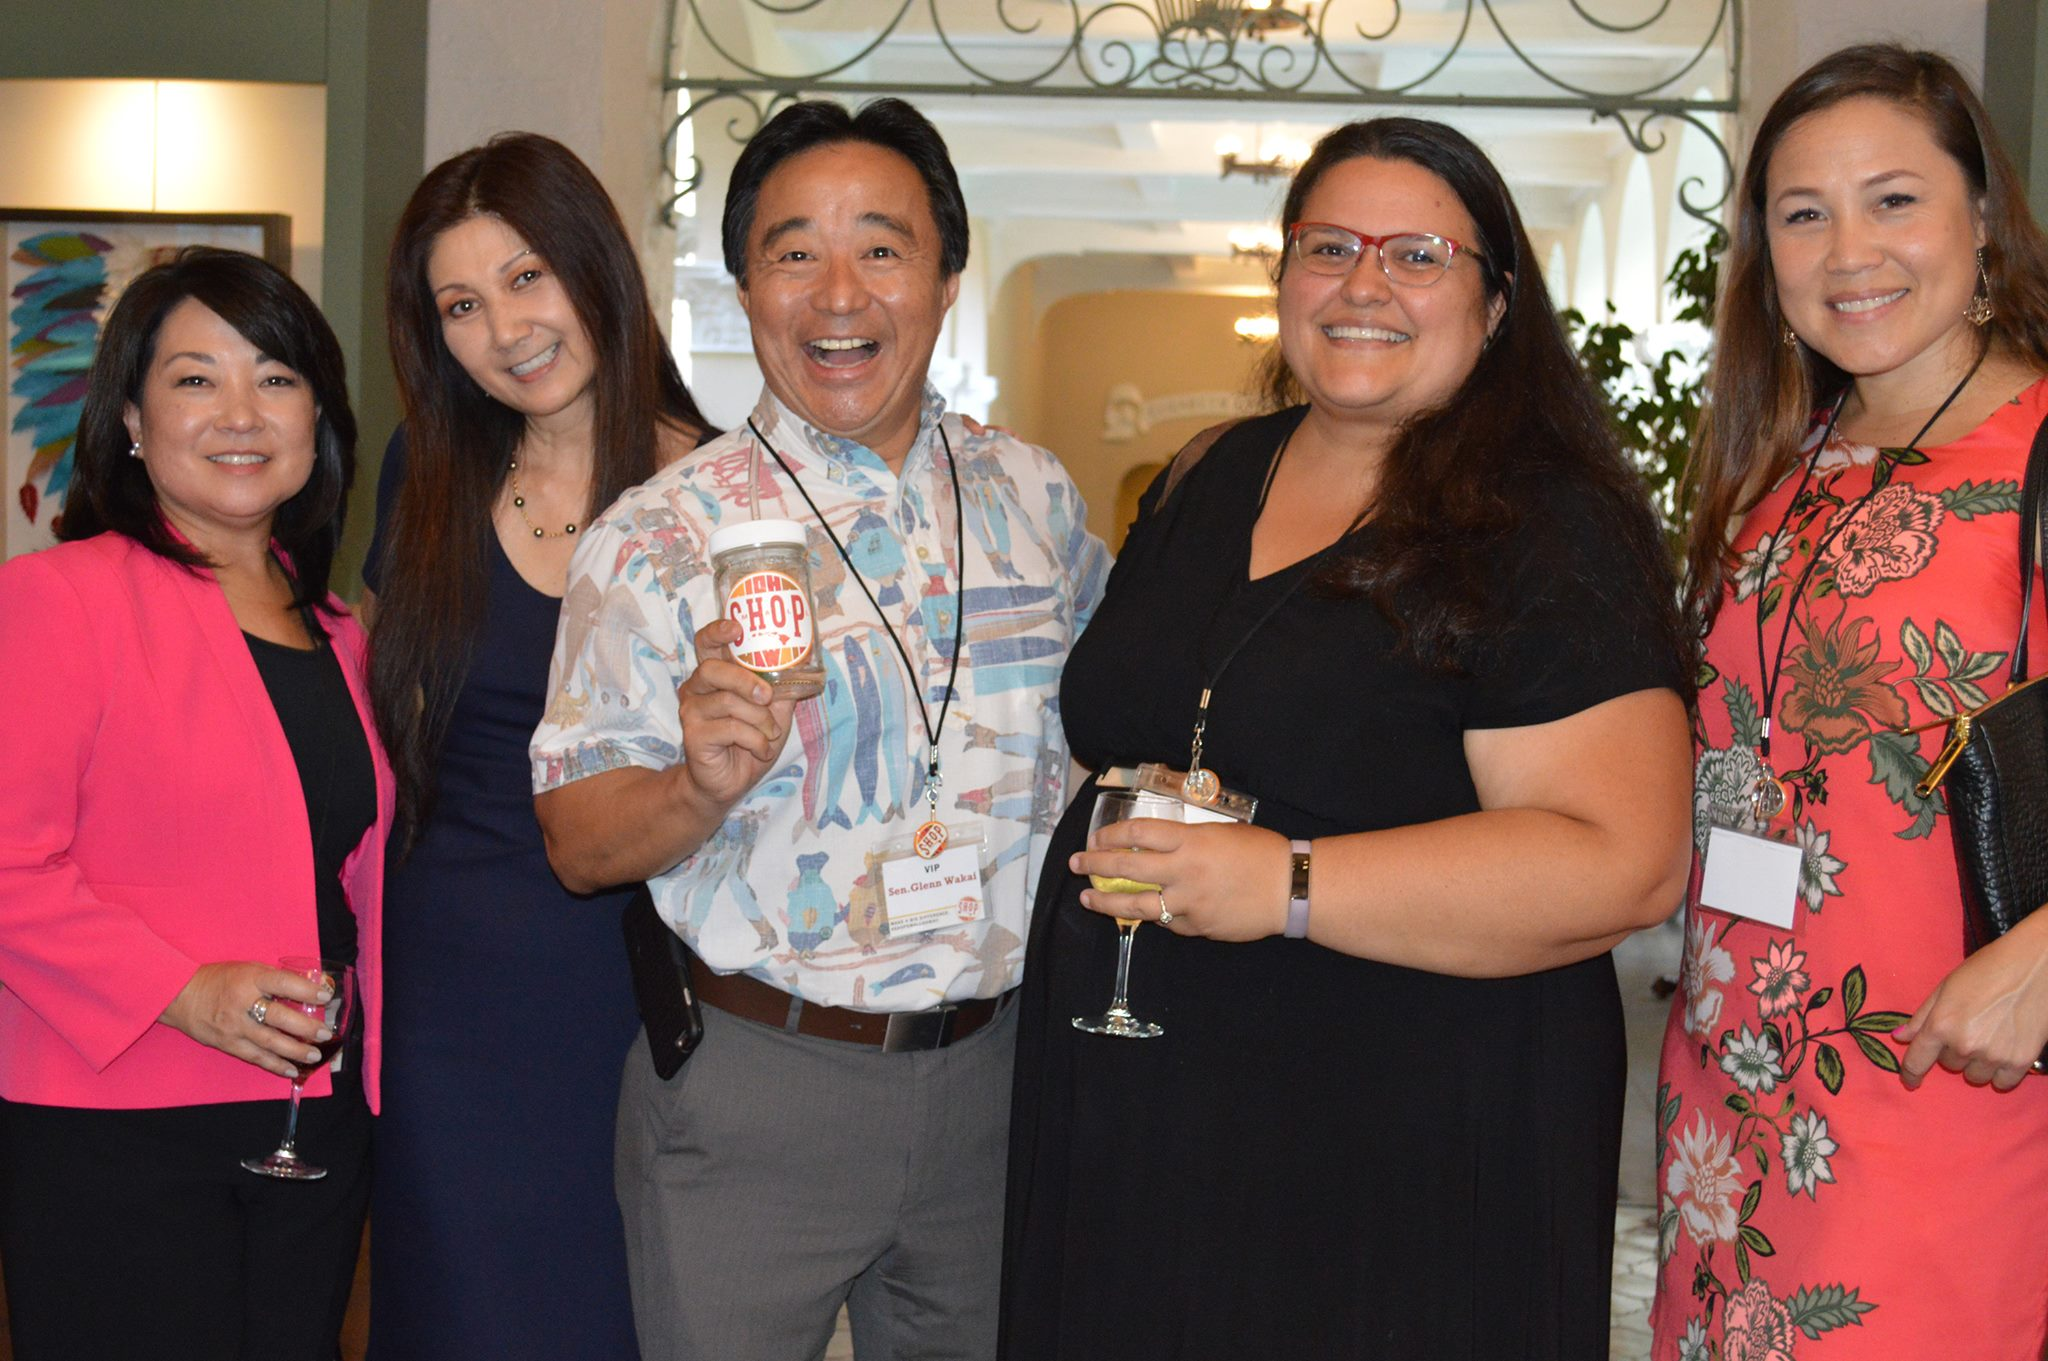 #SHOPSMALLHAWAII Community partners and supporters, Susan Utsugi- Central Pacific Bank, Terri Funakoshi -Mink Center, Senator Glenn Wakai, Poni Askew- Street Grindz, Mele James - Mana Up